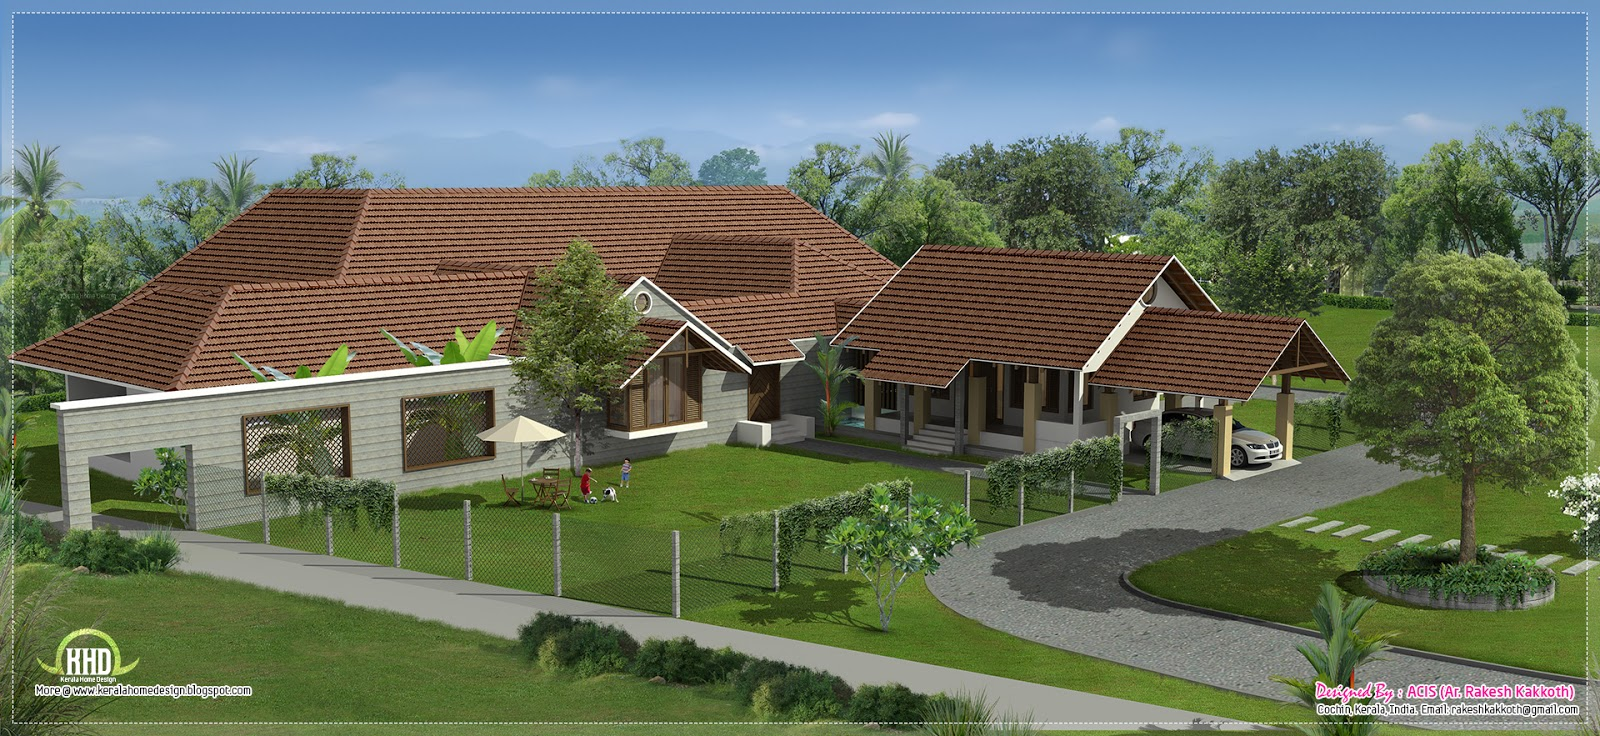 Luxury Bungalow Exterior Design Kerala Home Design And